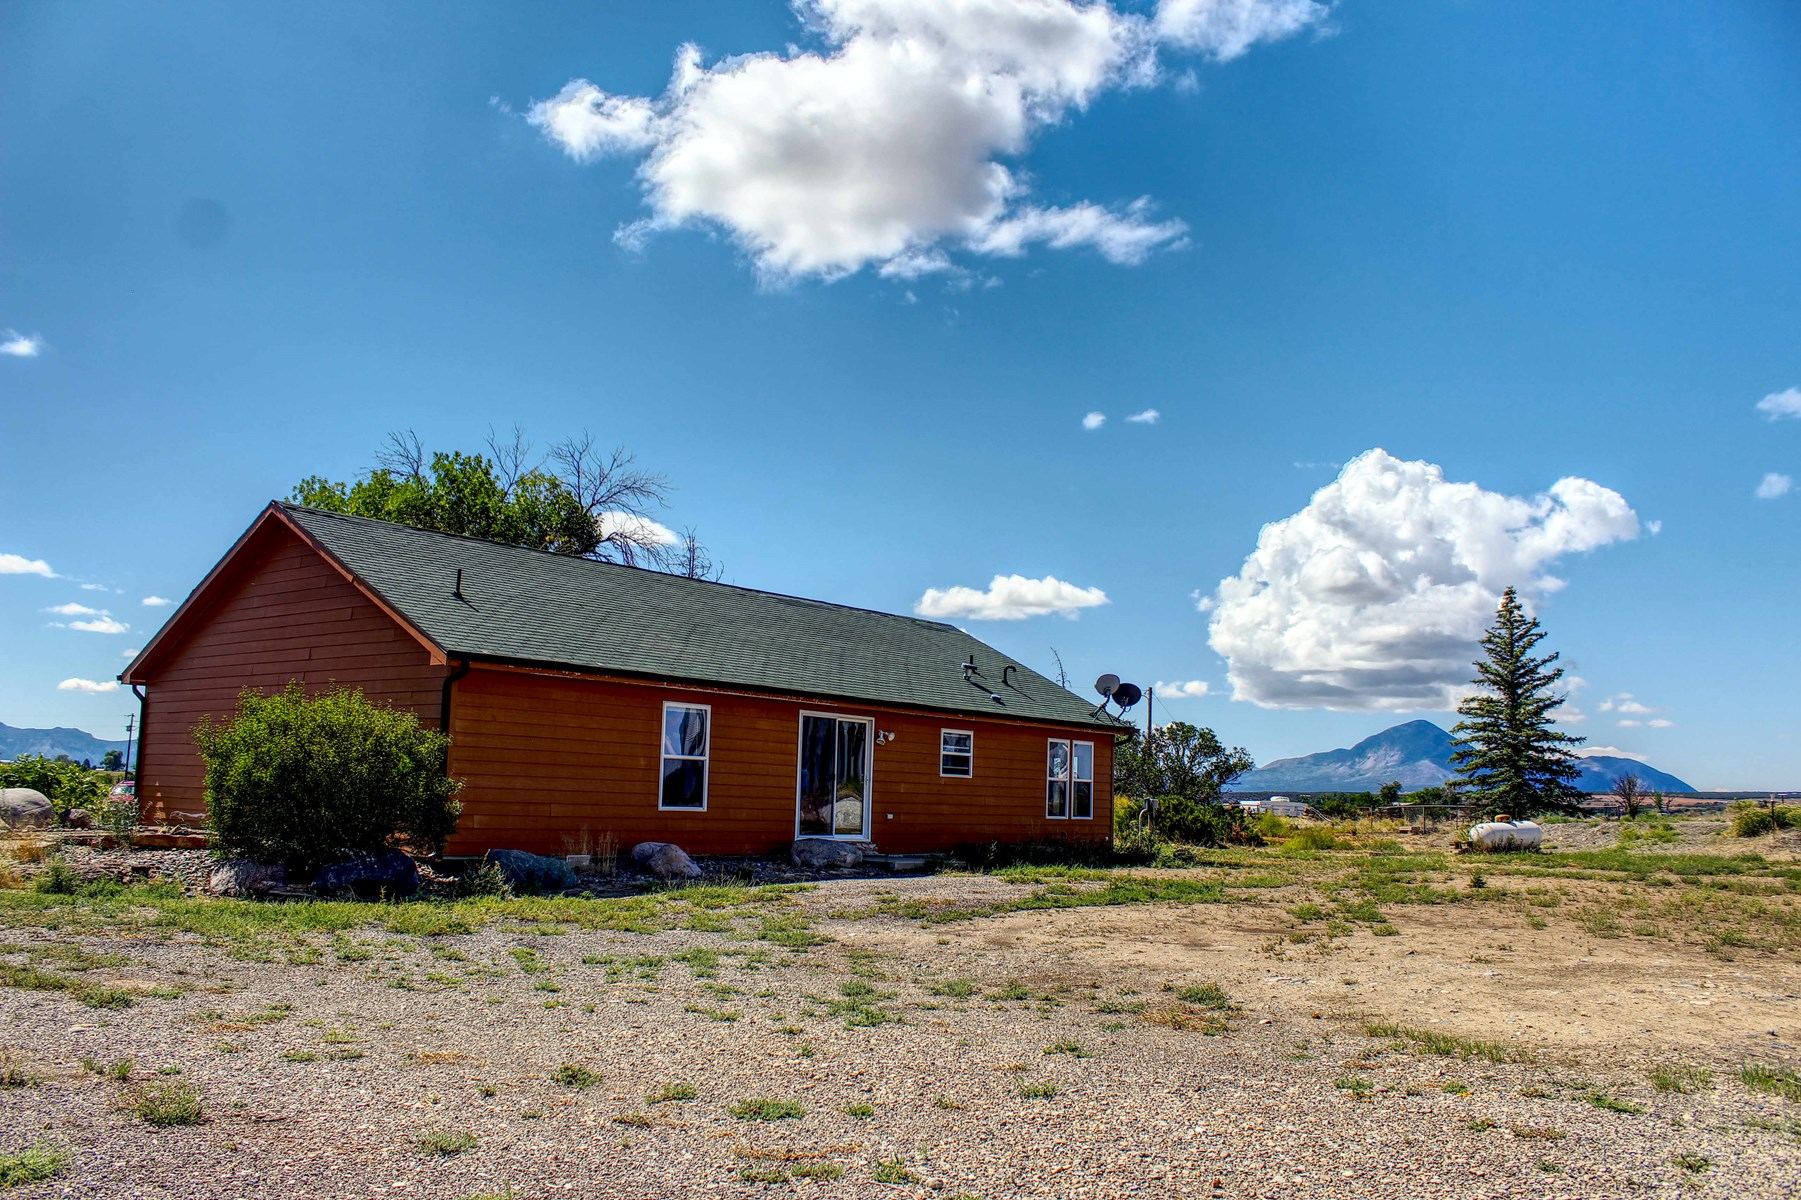 Home & Acreage in Cortez, CO with Mountain Views For Sale